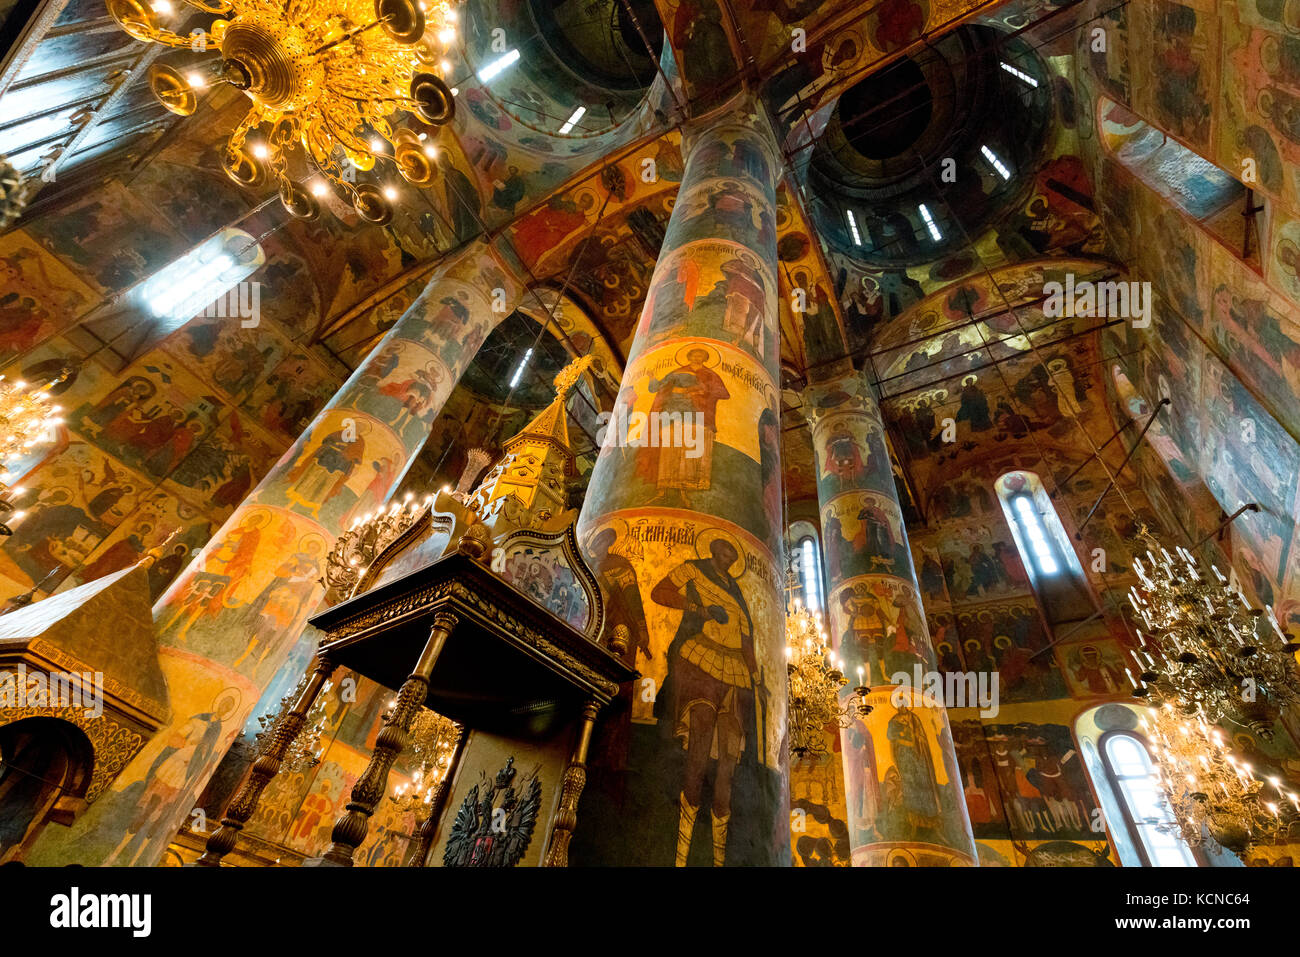 Interior of Annunciation Cathedral, Kremlin, Moscow, Russian Federation - Stock Image